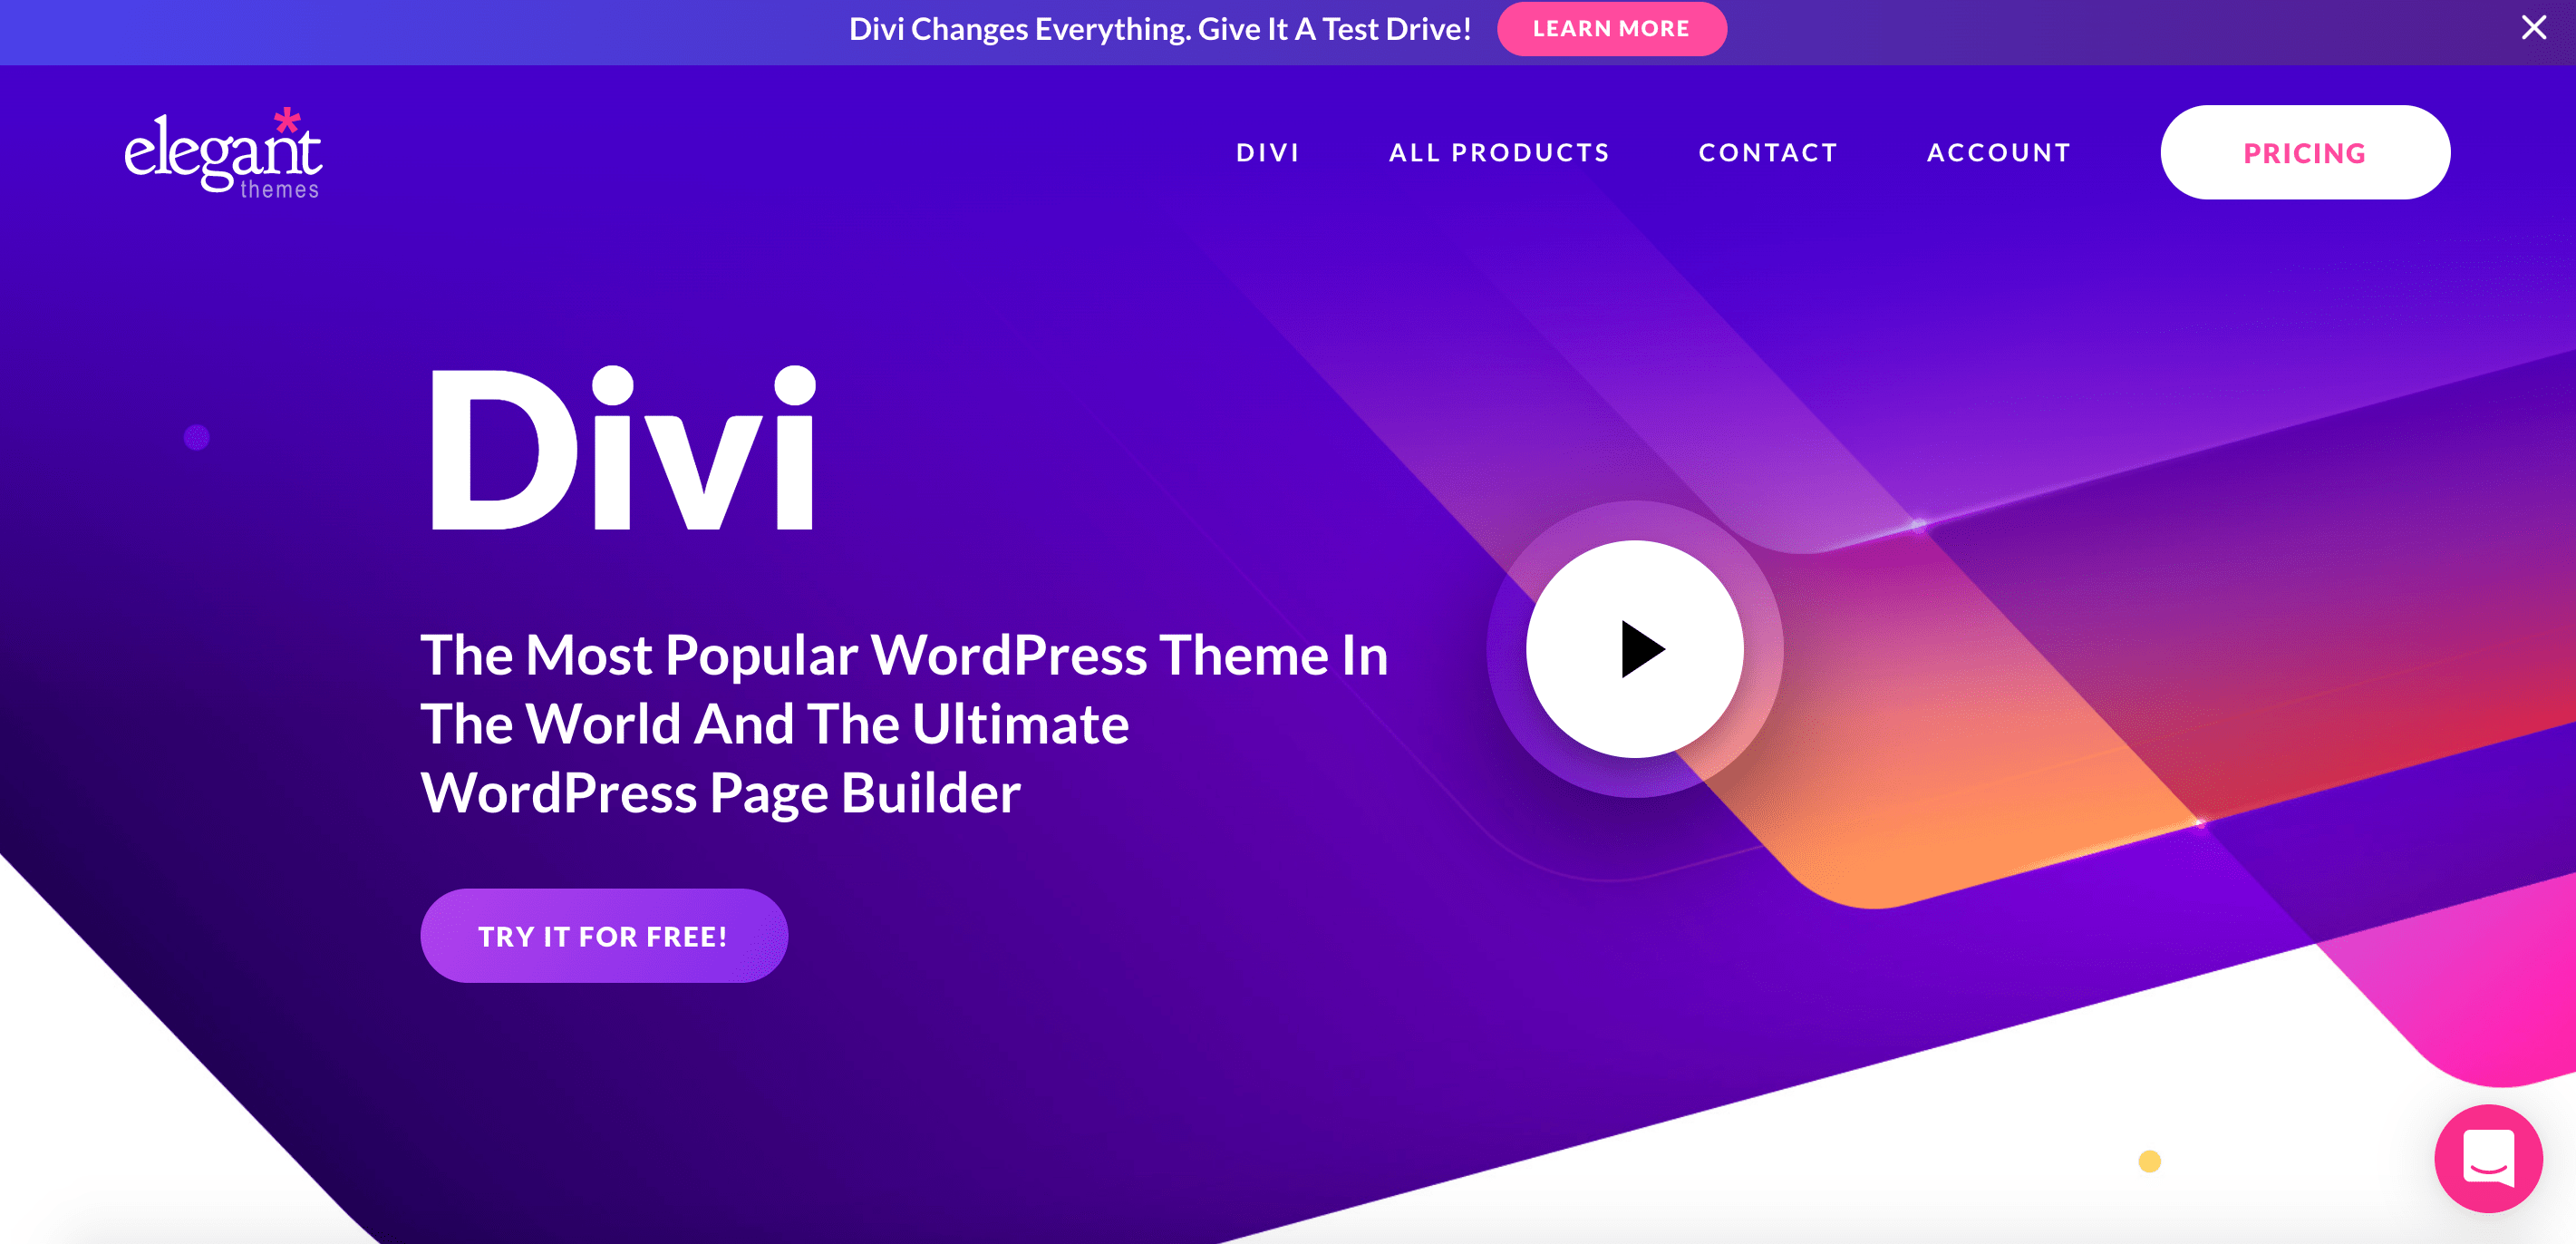 elegant themes divi affiliation